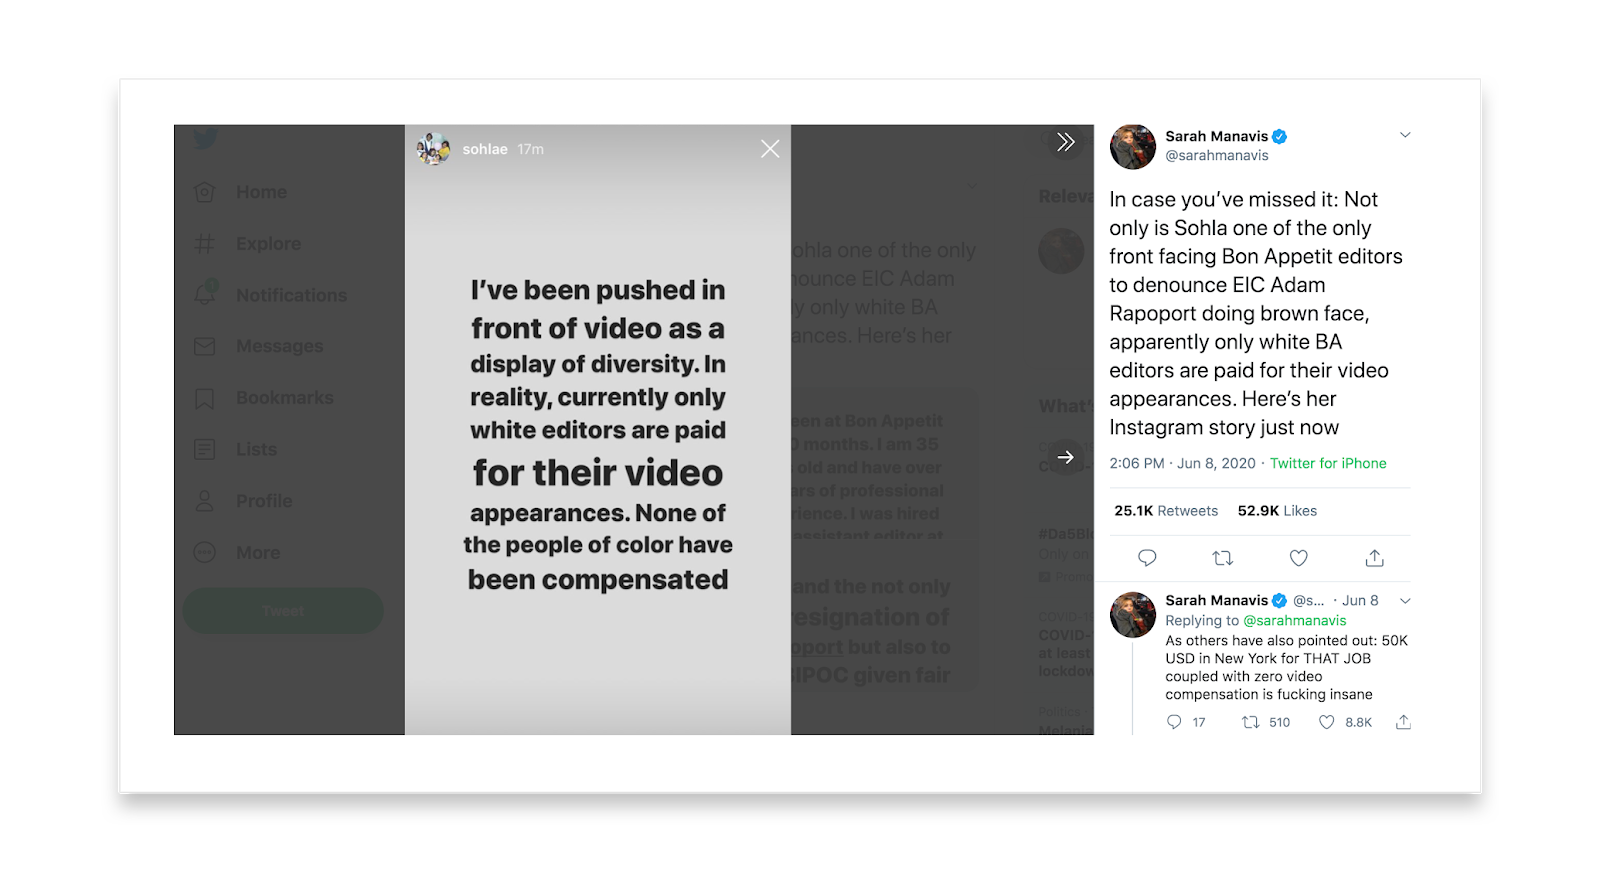 This tweet's image is gray with black words that read I've been pushed in front of video as a display of diversity. In reality, currently only white editors are paid for their video appearances. None of the people of color have been compensated. The caption by Sarah Manavis reads In case, you've missed it: Not only is Sohla one of the only front facing Bon Appetit editors to denounce EIC Adam Rapoport doing brown face, apparently only white BA editors are paid for their video appearances. Here's her Instagram Story just now. Sarah replies to herself As others have also pointed out: 50k USD in New York for THAT JOB couple with zero video compensation is fucking insane.